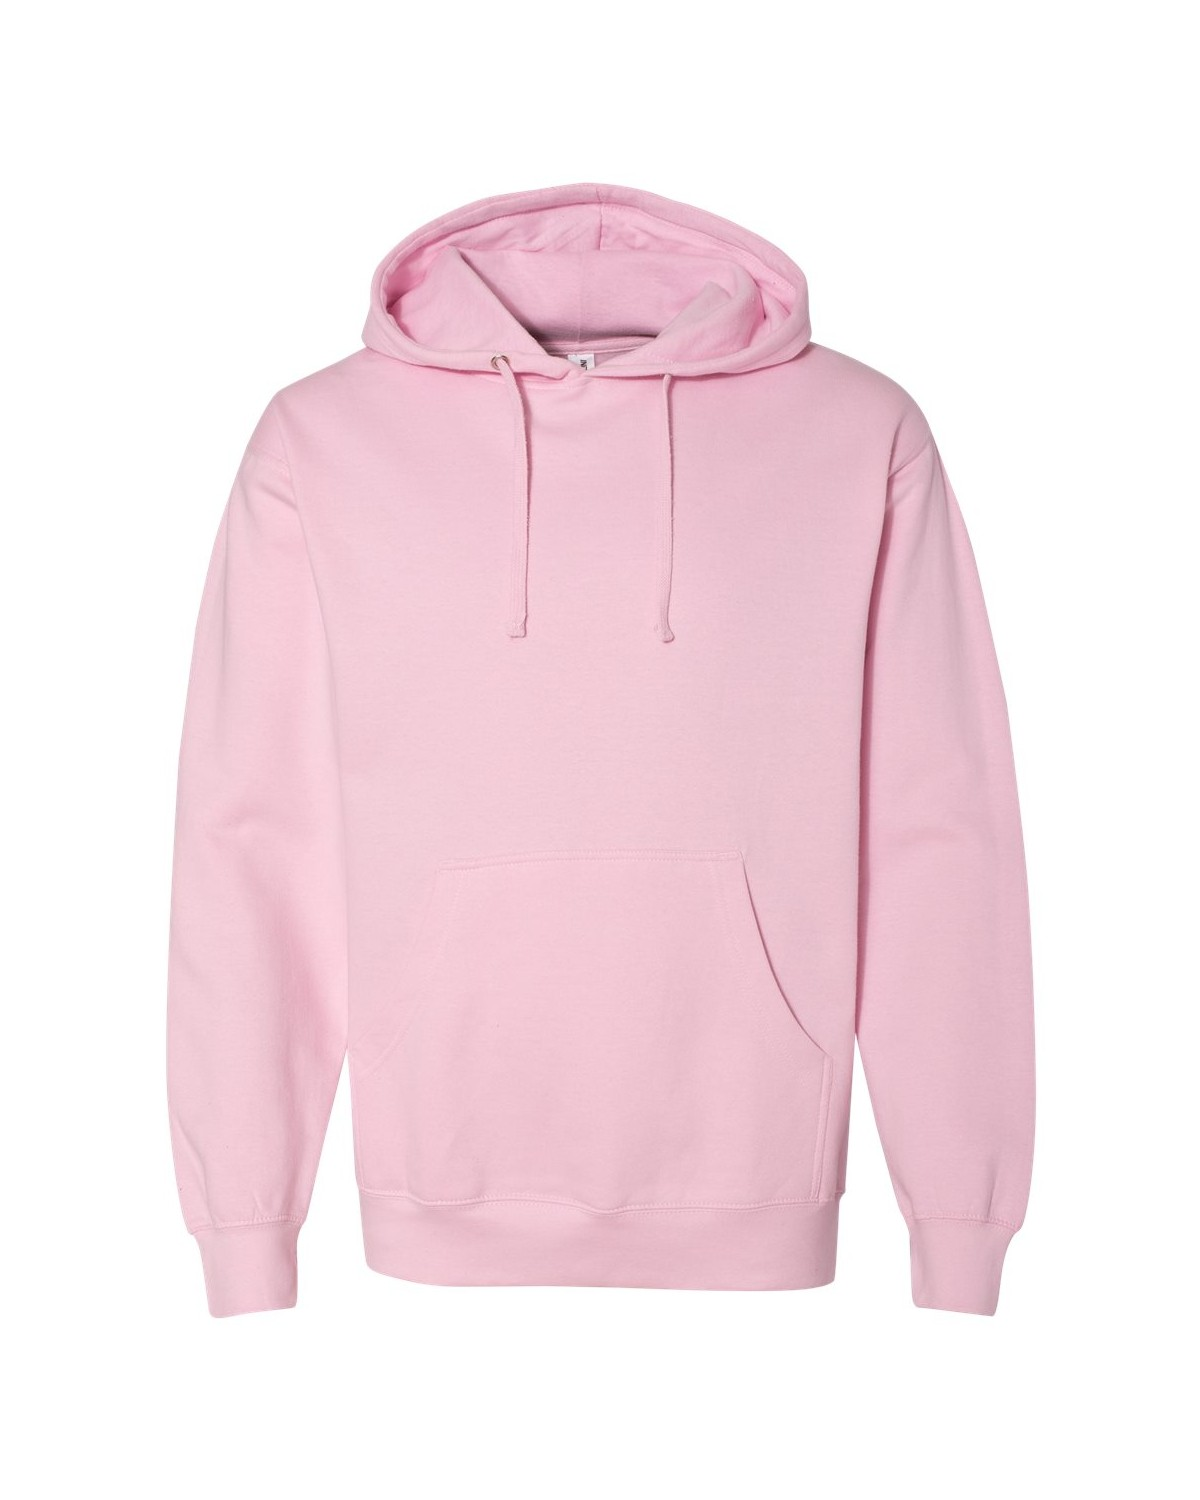 SS4500 Independent Trading Co. LIGHT PINK